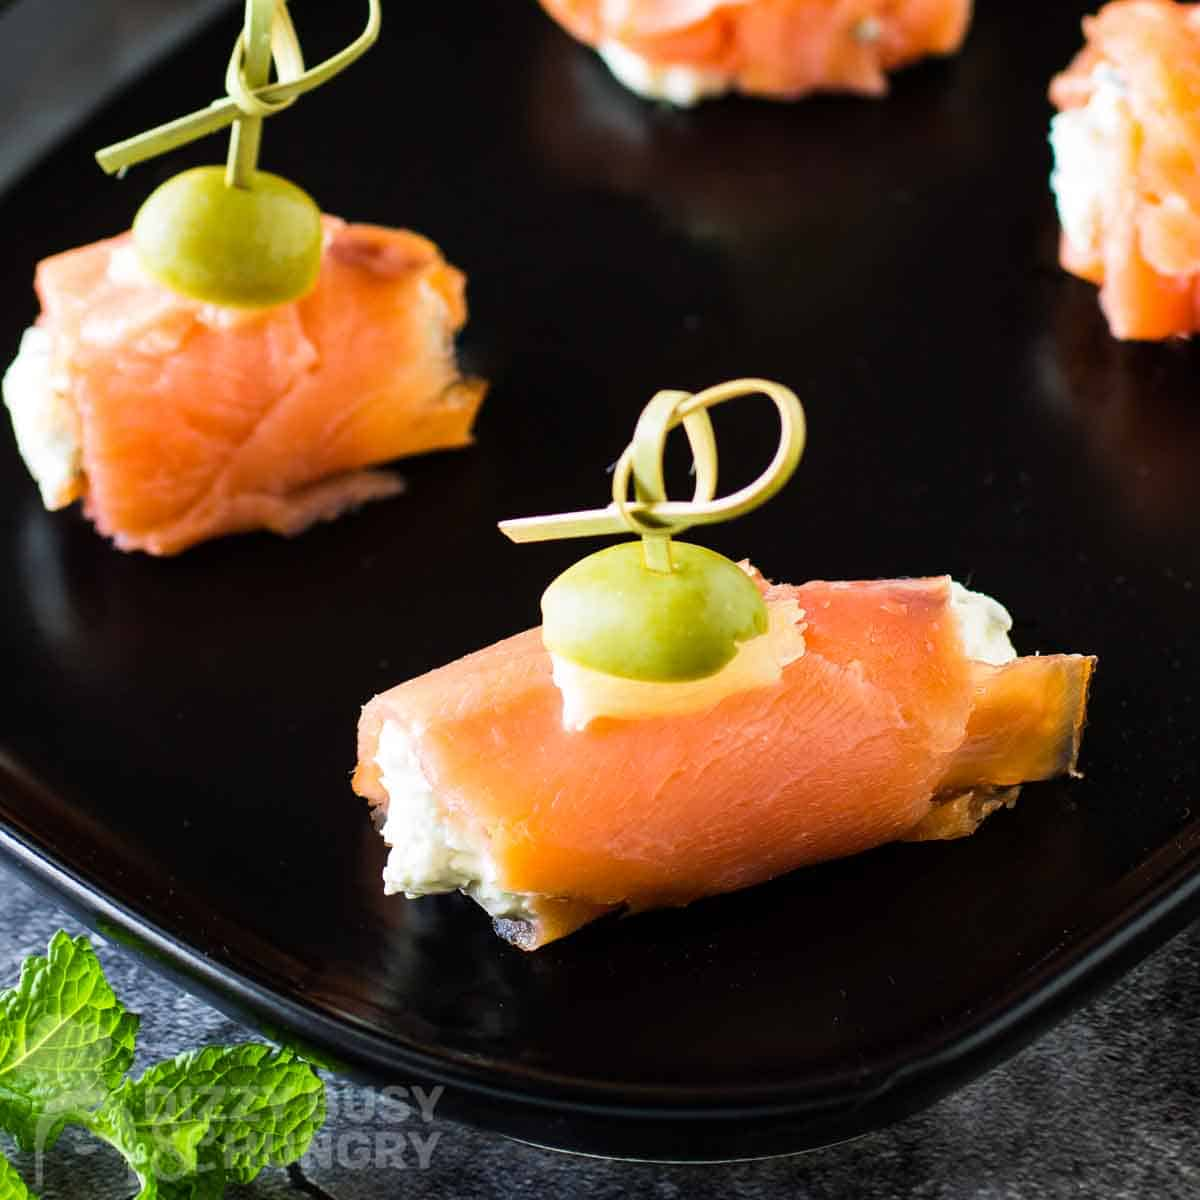 Overhead side view of smoked salmon bites on a black plate with herbs on the side.